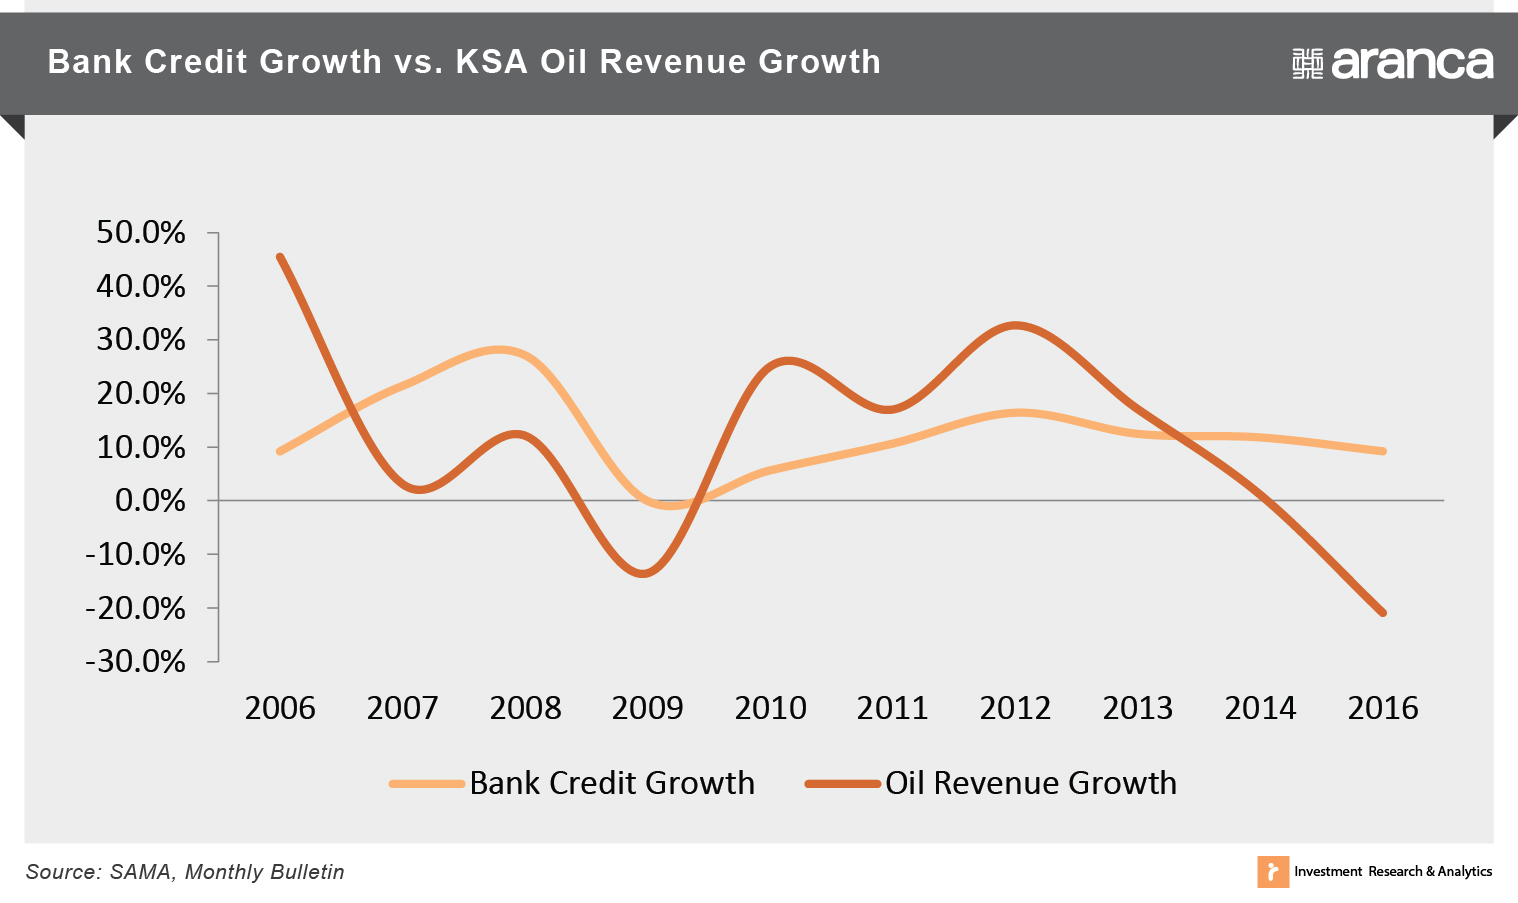 Bank Credit Growth vs. KSA Oil Revenue Growth